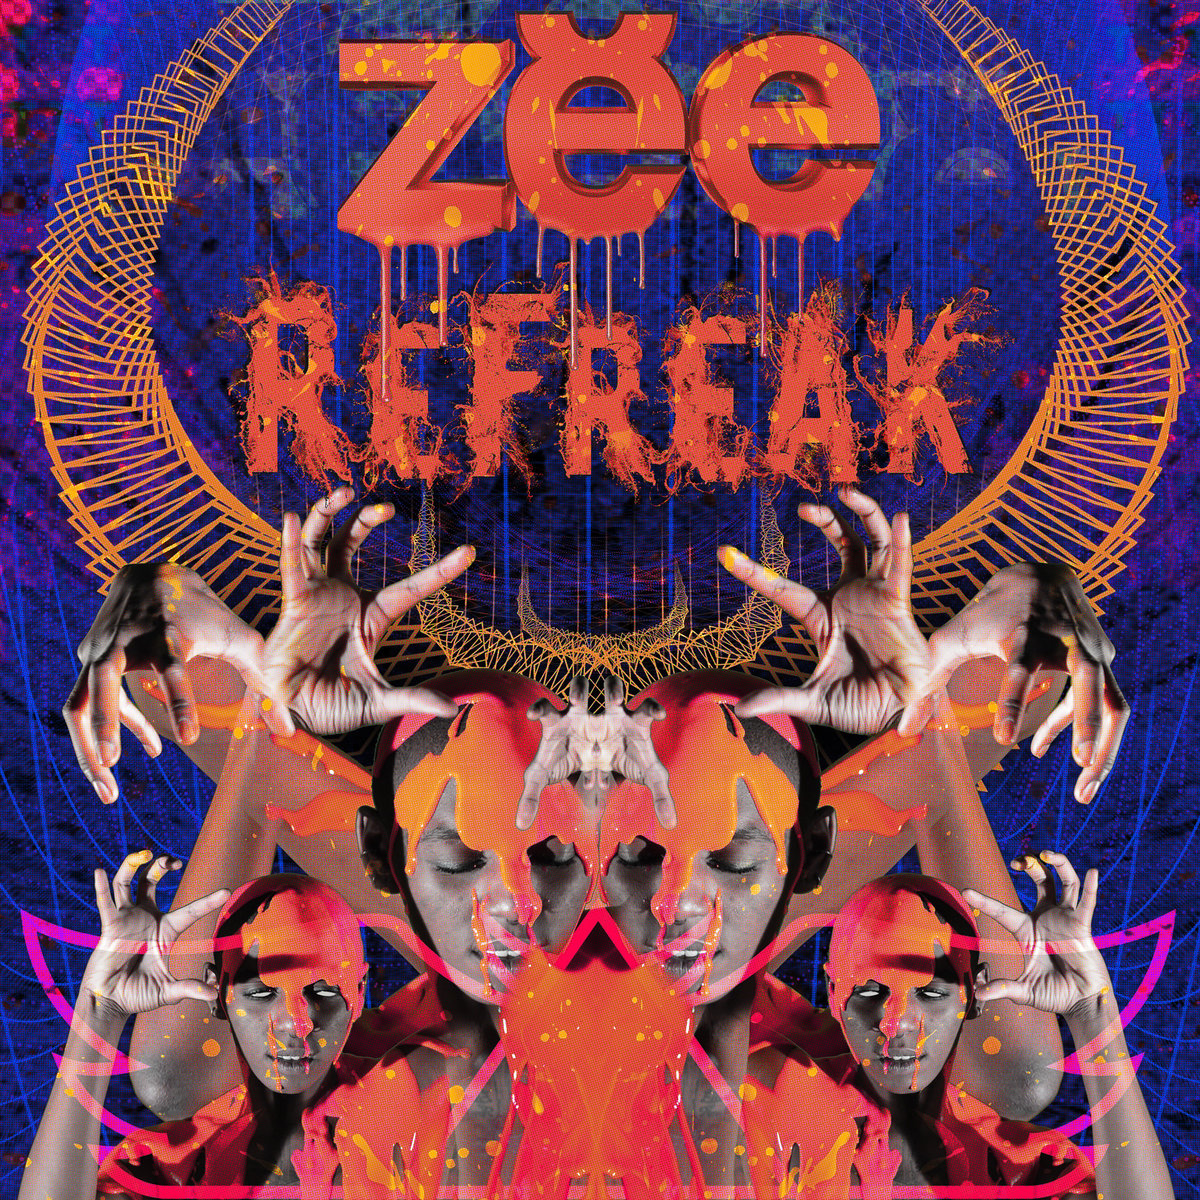 Zebbler Encanti Experience - Immediacy (Ian Cahill Remix) @ 'ReFreak' album (electronic, bass)